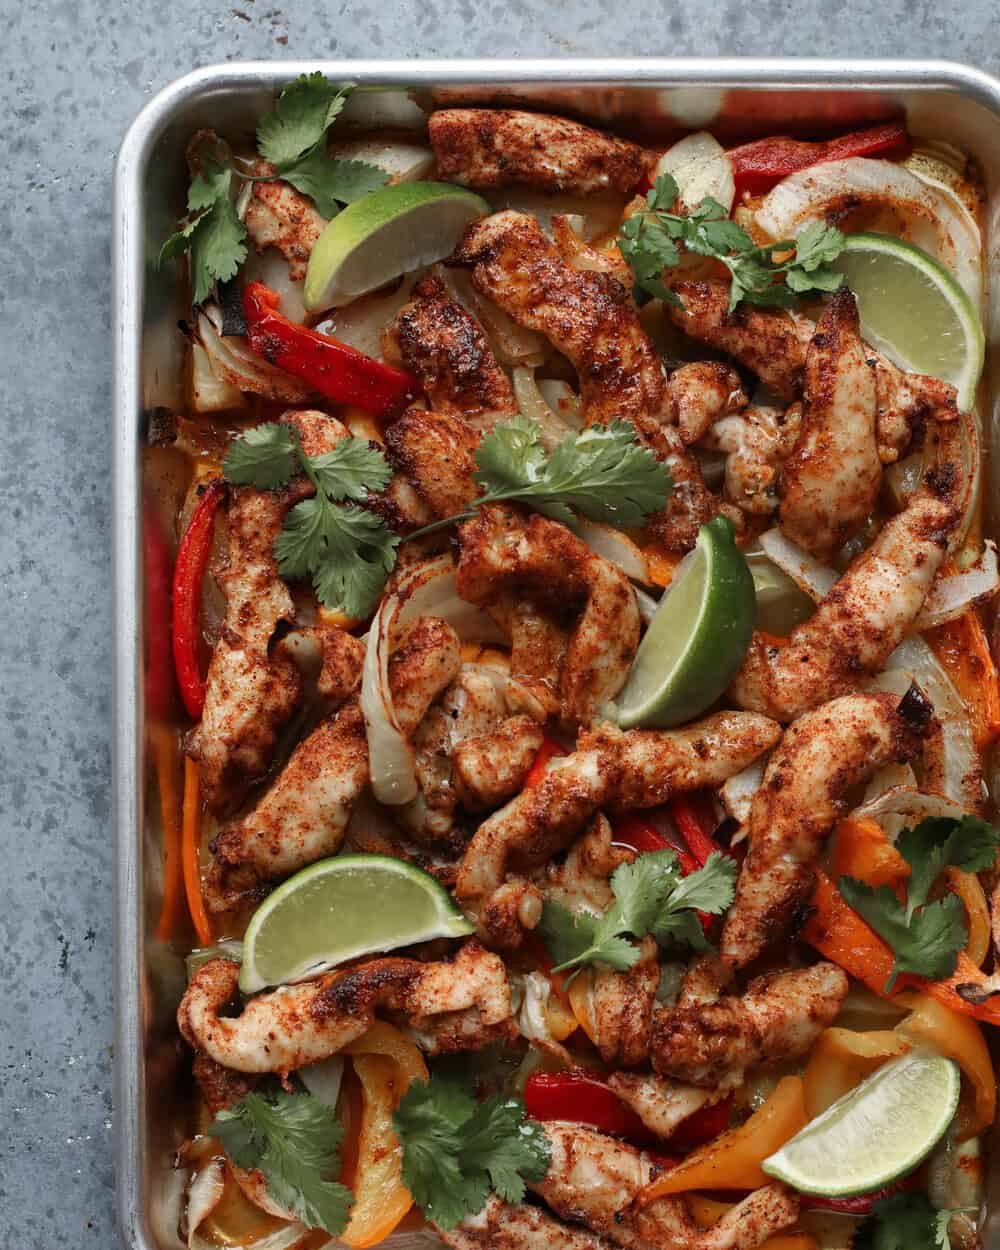 CHIPOTLE CHICKEN FAJITAS - INGREDIENTS2 lbs chicken tenders1 of each color bell peppers (green, yellow, red, orange)1 onion4 cloves garlic, mashed3 tb olive oil1 limecilantro to tasteFOR THE SEASONING:1/2 tsp chipotle powder1 tsp chili powder1 tsp paprika2 tb cumin1 tsp sea salt1/2 tsp pepper